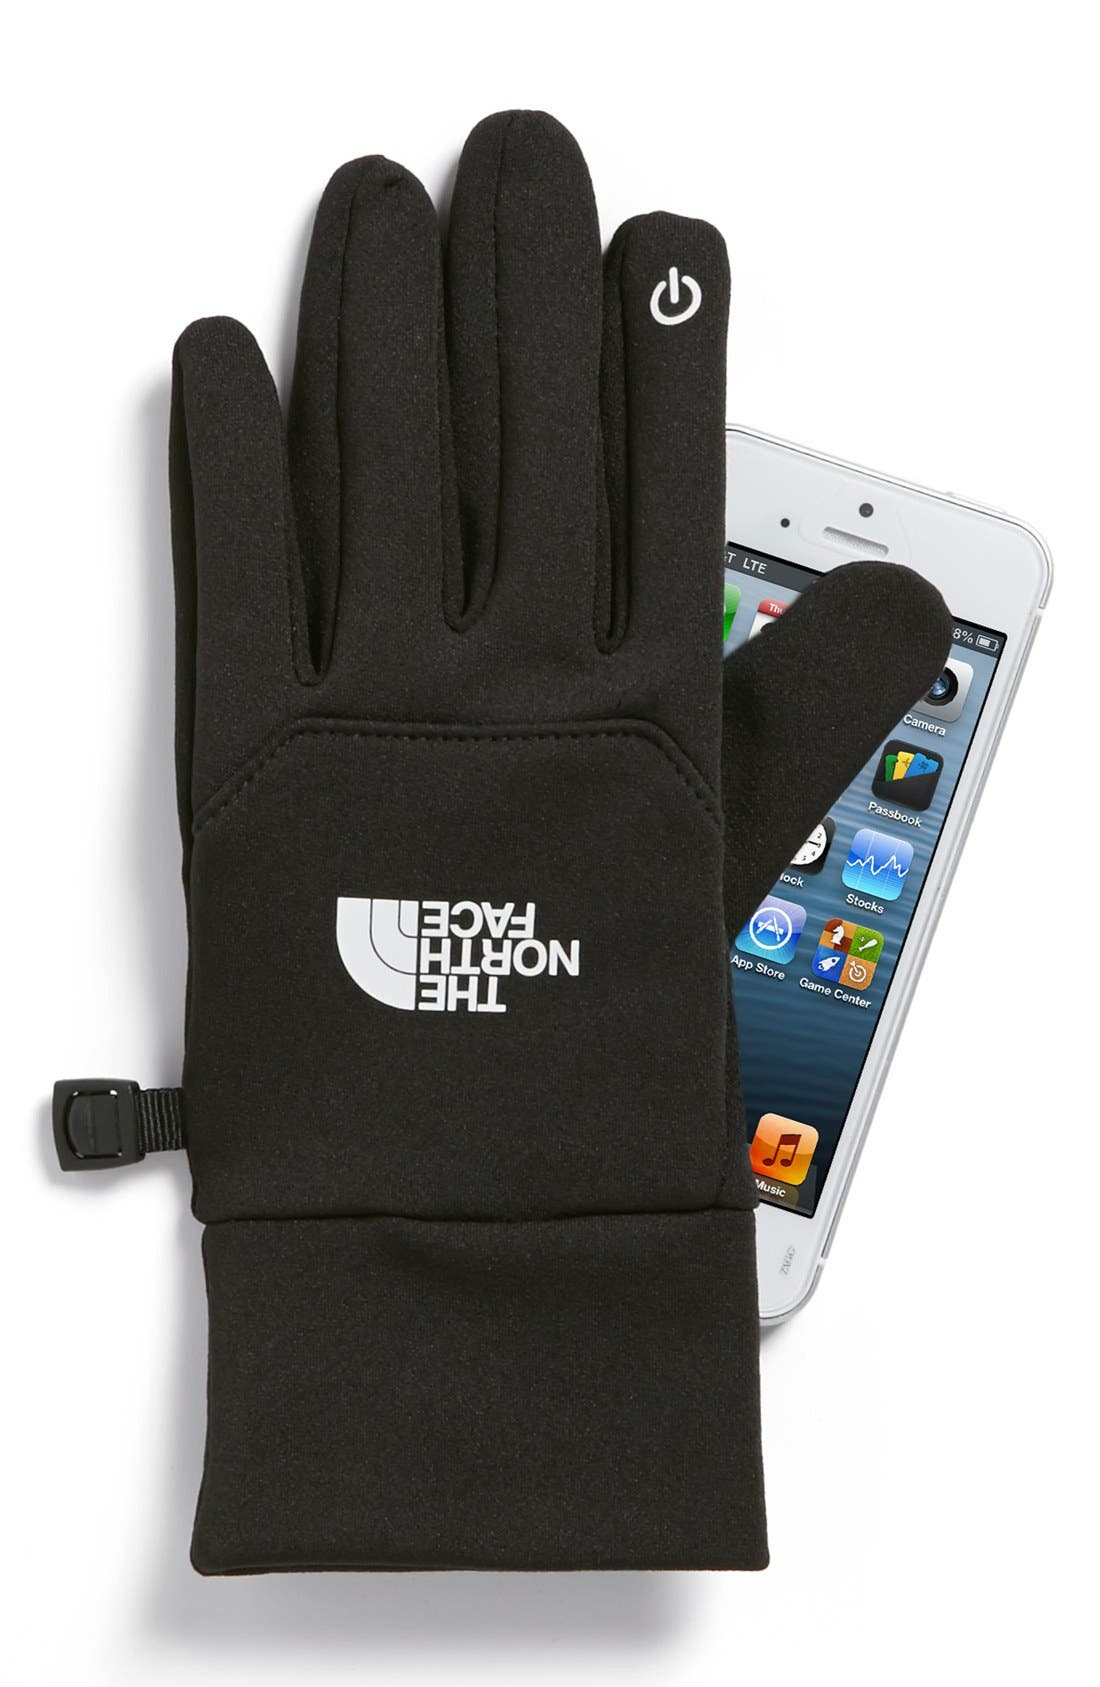 Alternate Image 2  - The North Face 'E-Tip' Glove (Regular Retail Price: $45.00)